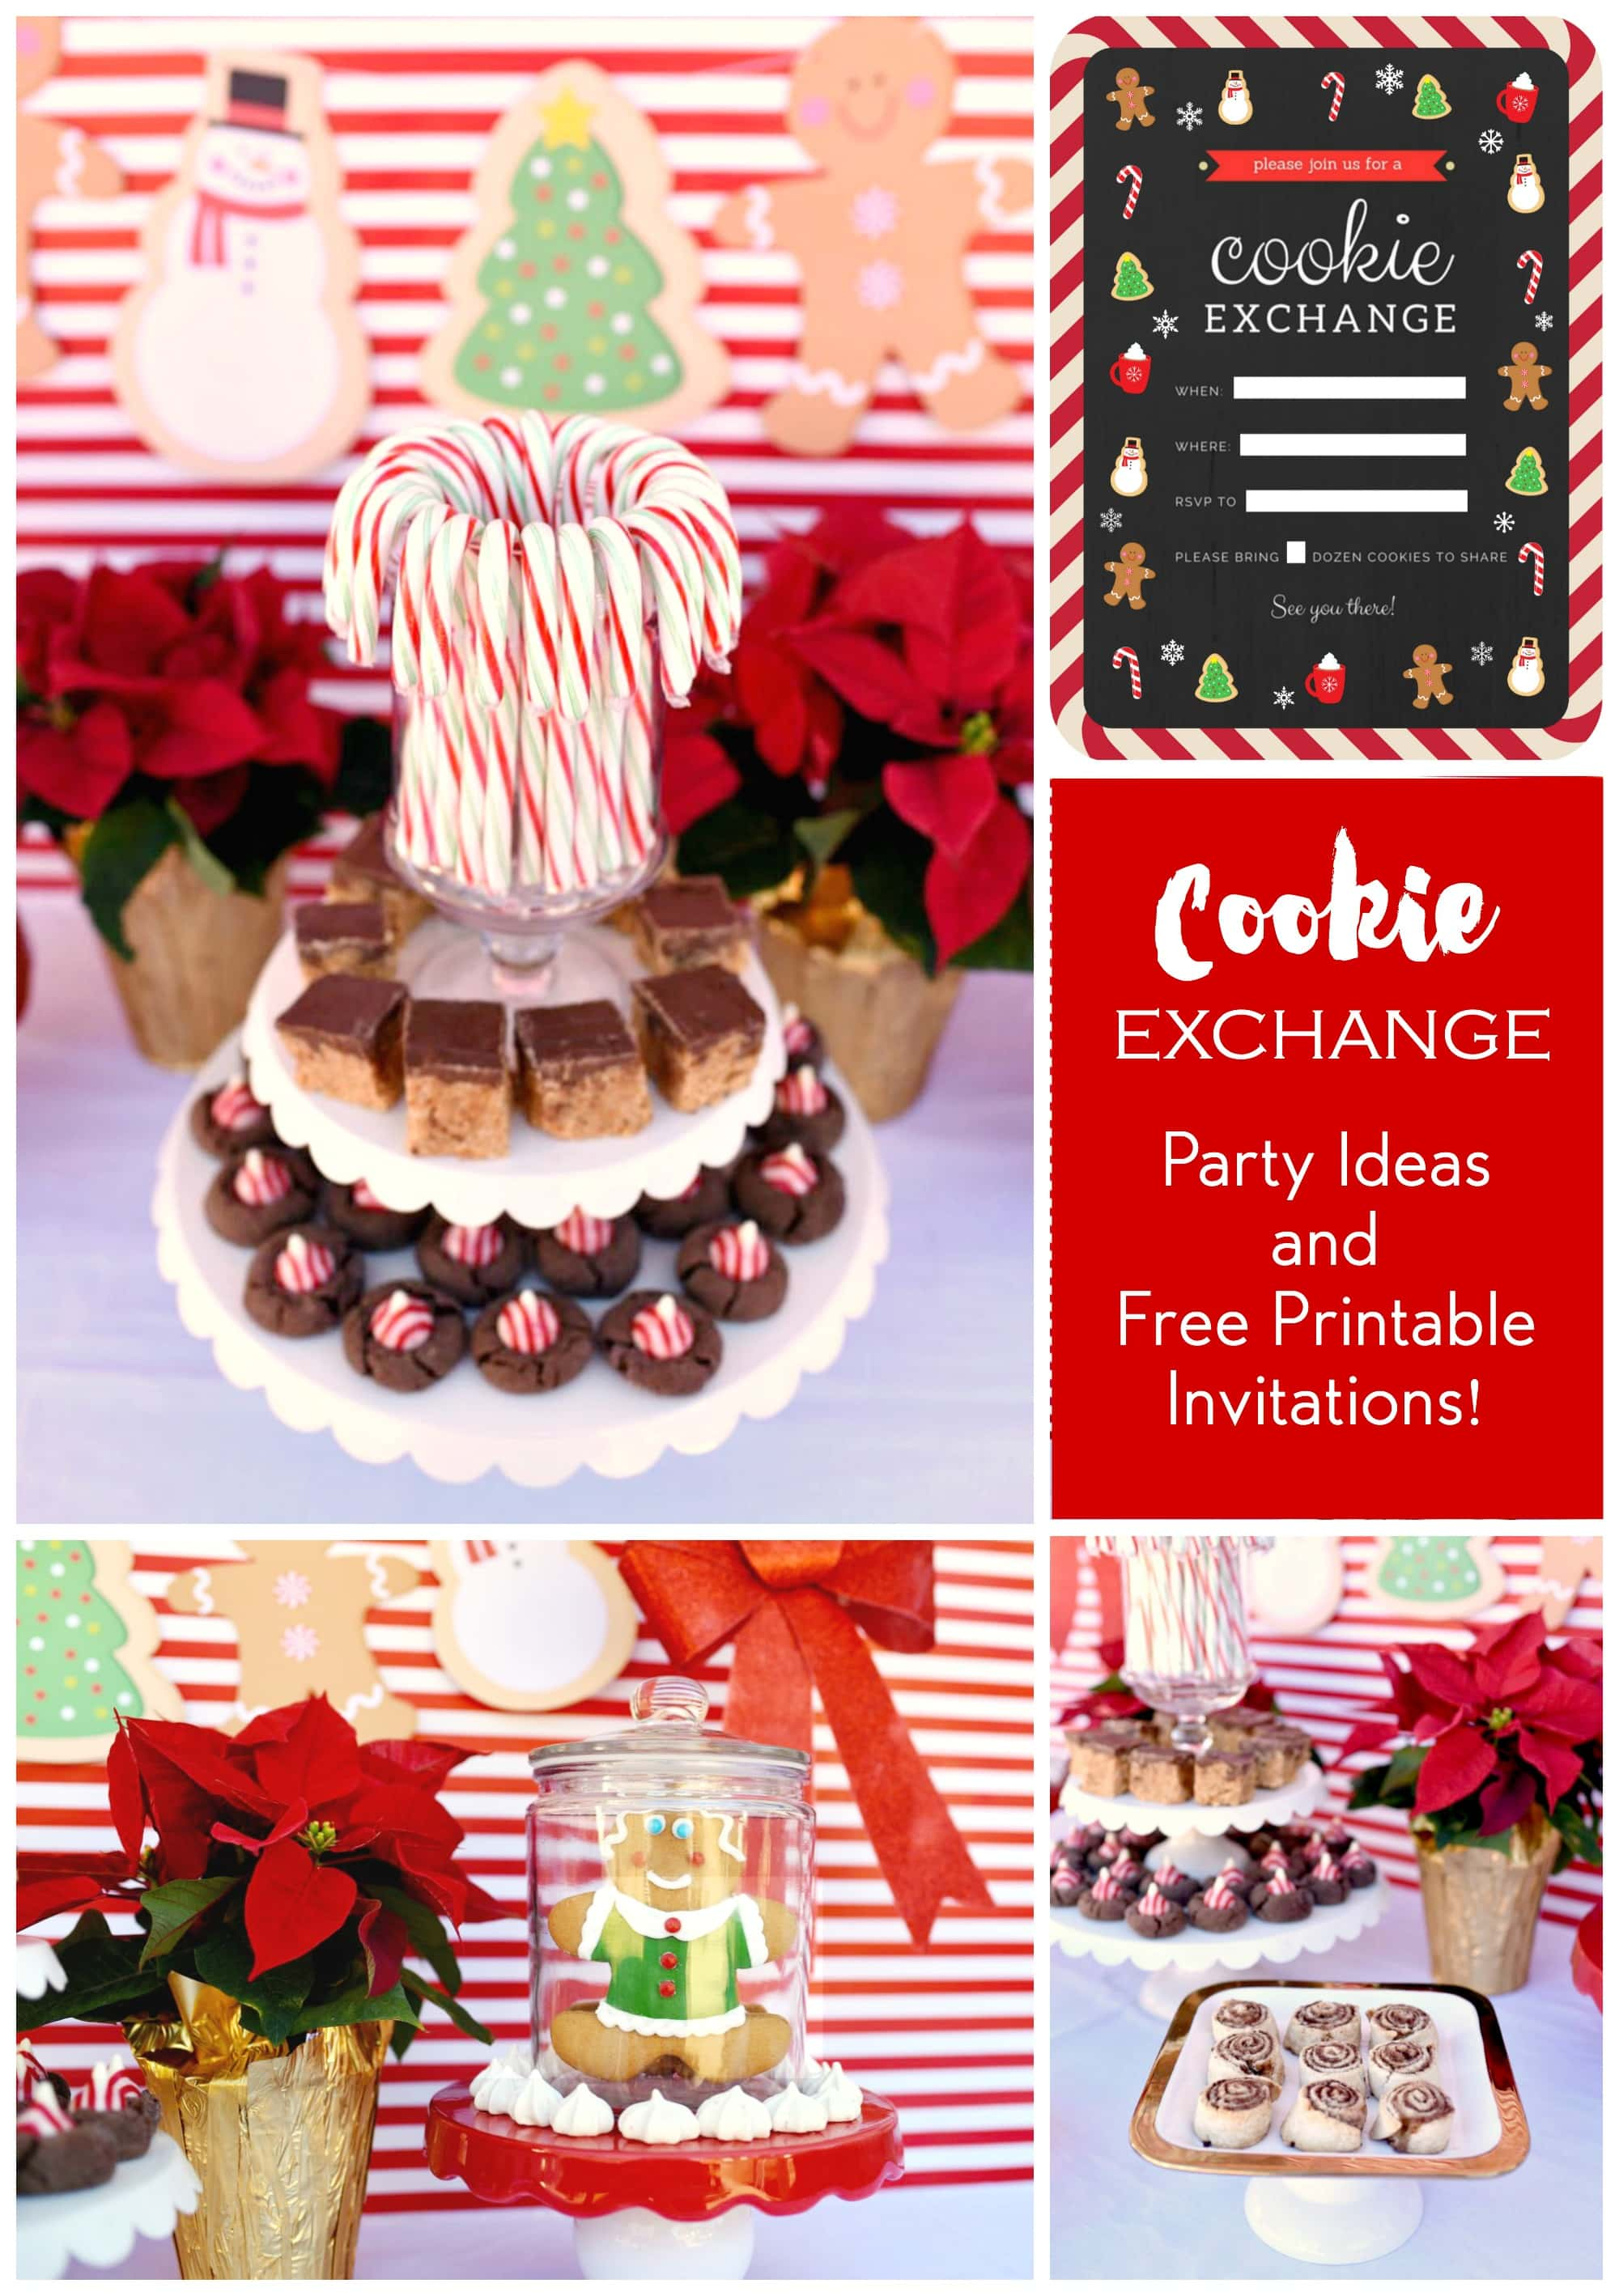 Cookie Exchange Party Free Party Invitations Make Life Lovely